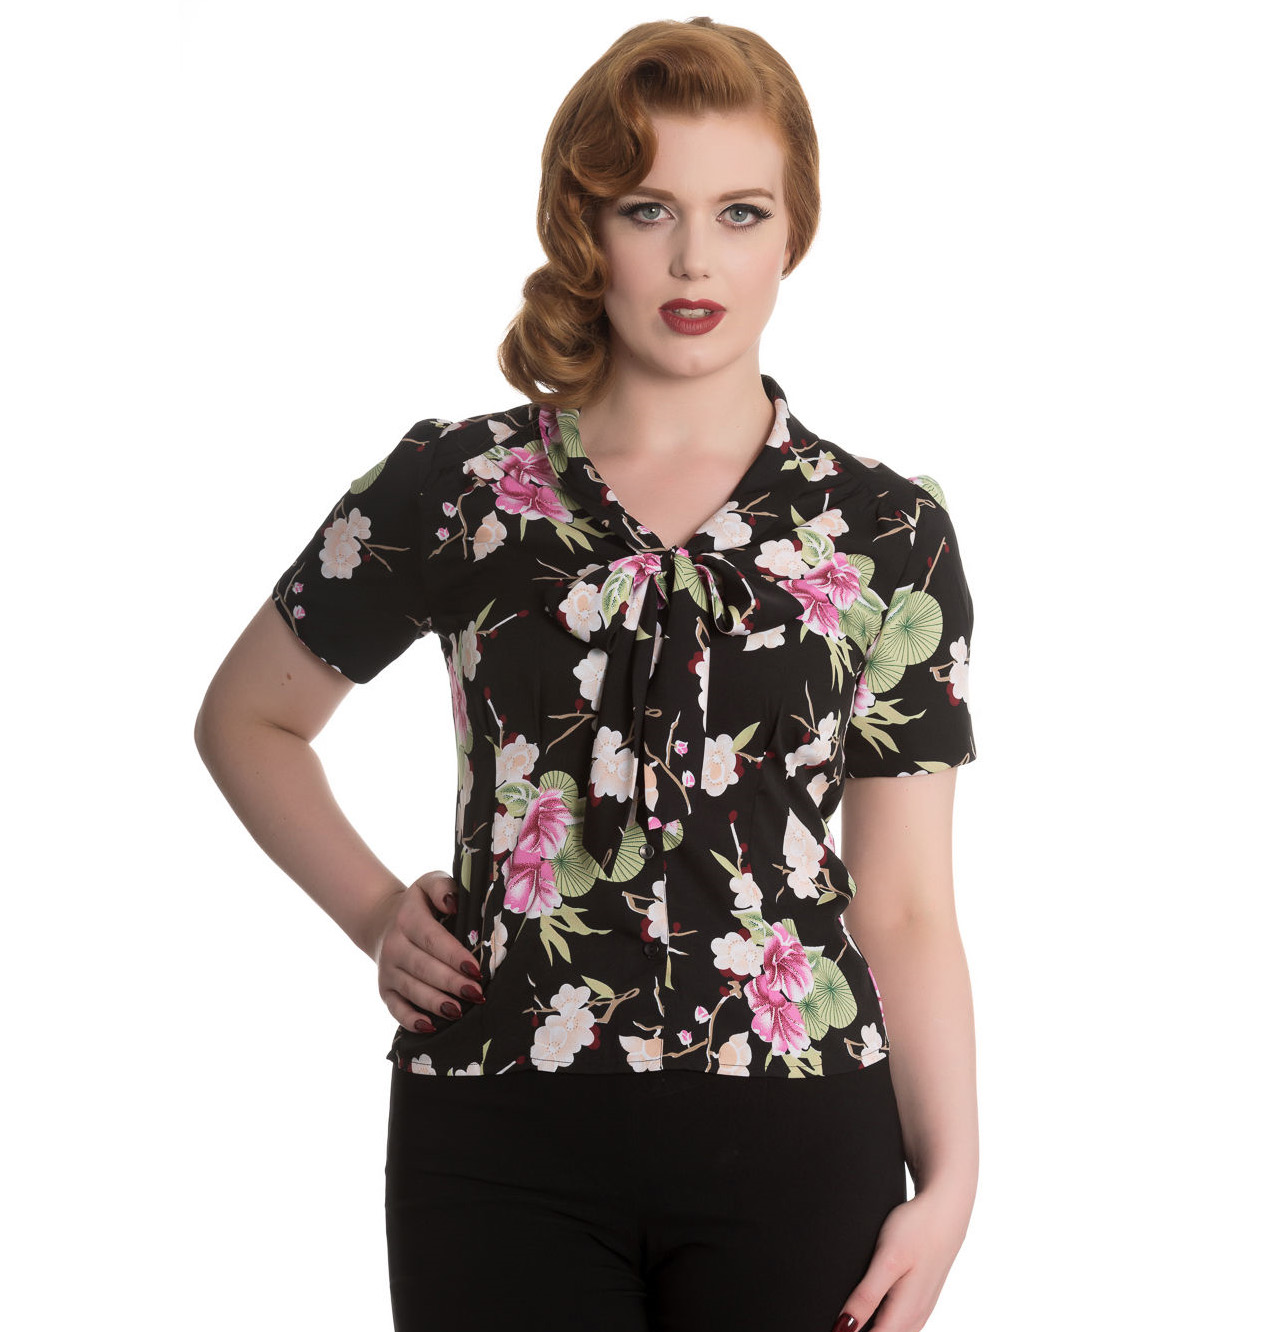 Hell-Bunny-Shirt-Top-40s-50s-Black-FREYA-Pink-Flowers-Floral-Blouse-All-Sizes thumbnail 7